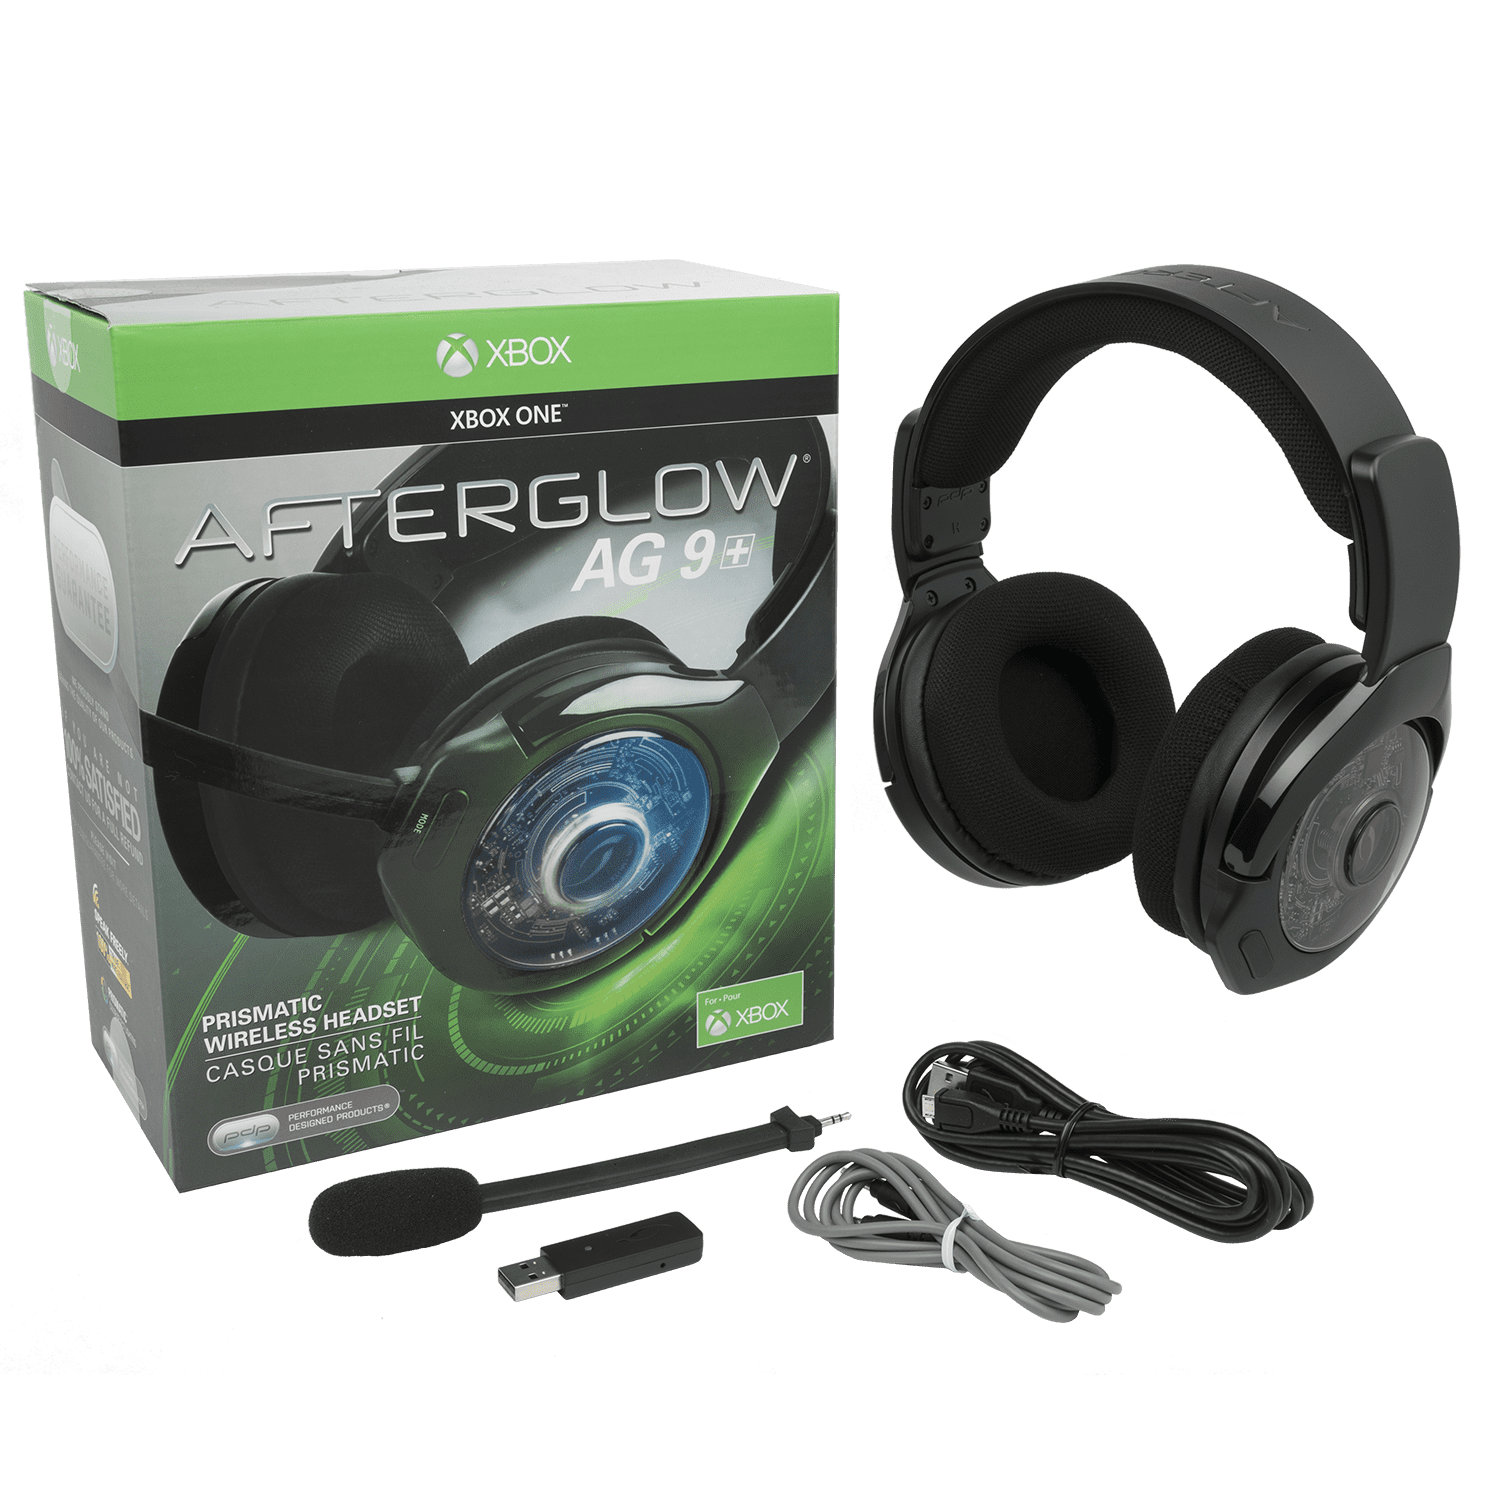 Pdp Xbox One Afterglow Ag 9 Prismatic True Wireless Gaming Headset Universal Earphone Bluetooth 41 Branded Black 048 056 Na